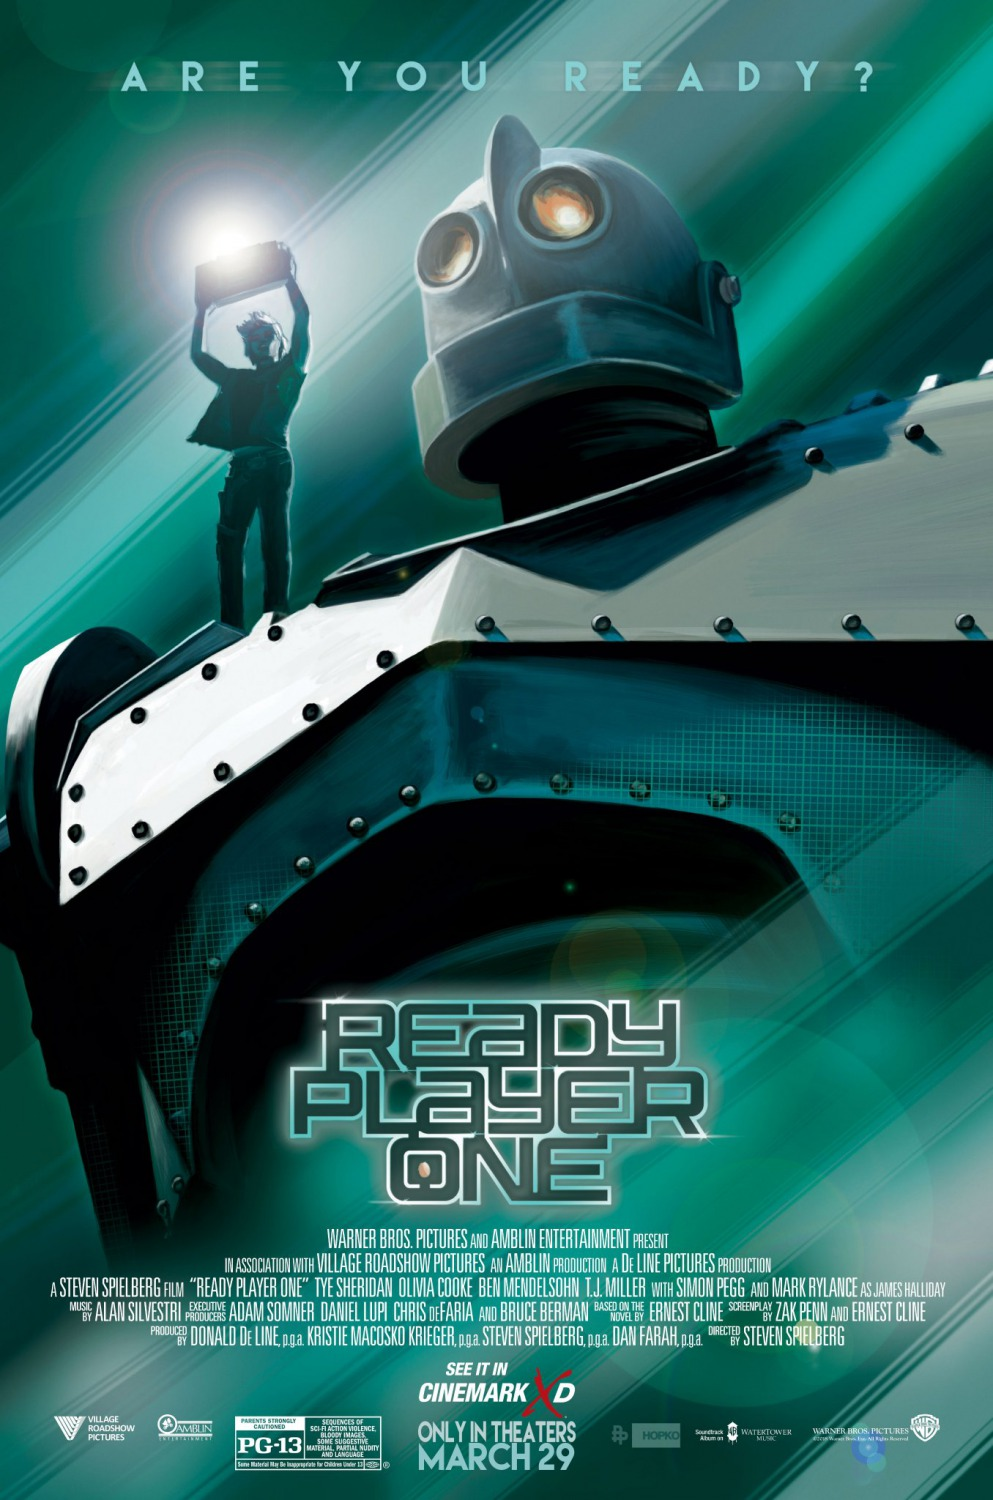 Ready Player One Iron Giant Poster